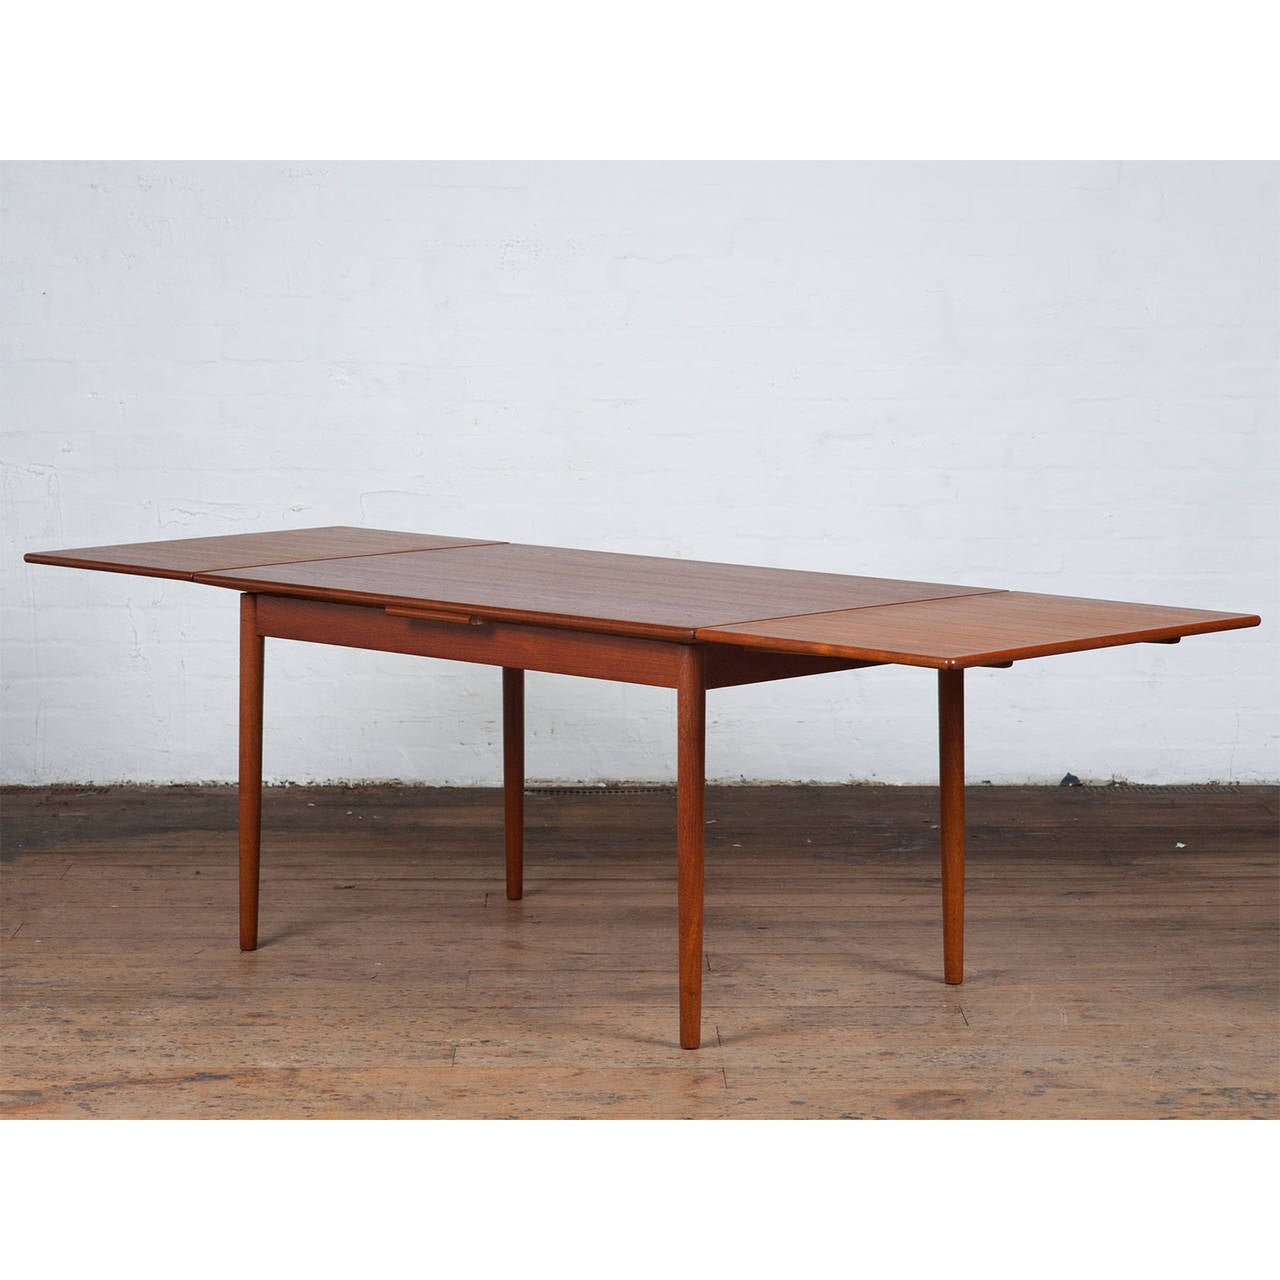 Mid Century Danish Teak Dining Table For Sale at 1stdibs : NewTeakDiningTablesideviewl from www.1stdibs.com size 1280 x 1280 jpeg 106kB